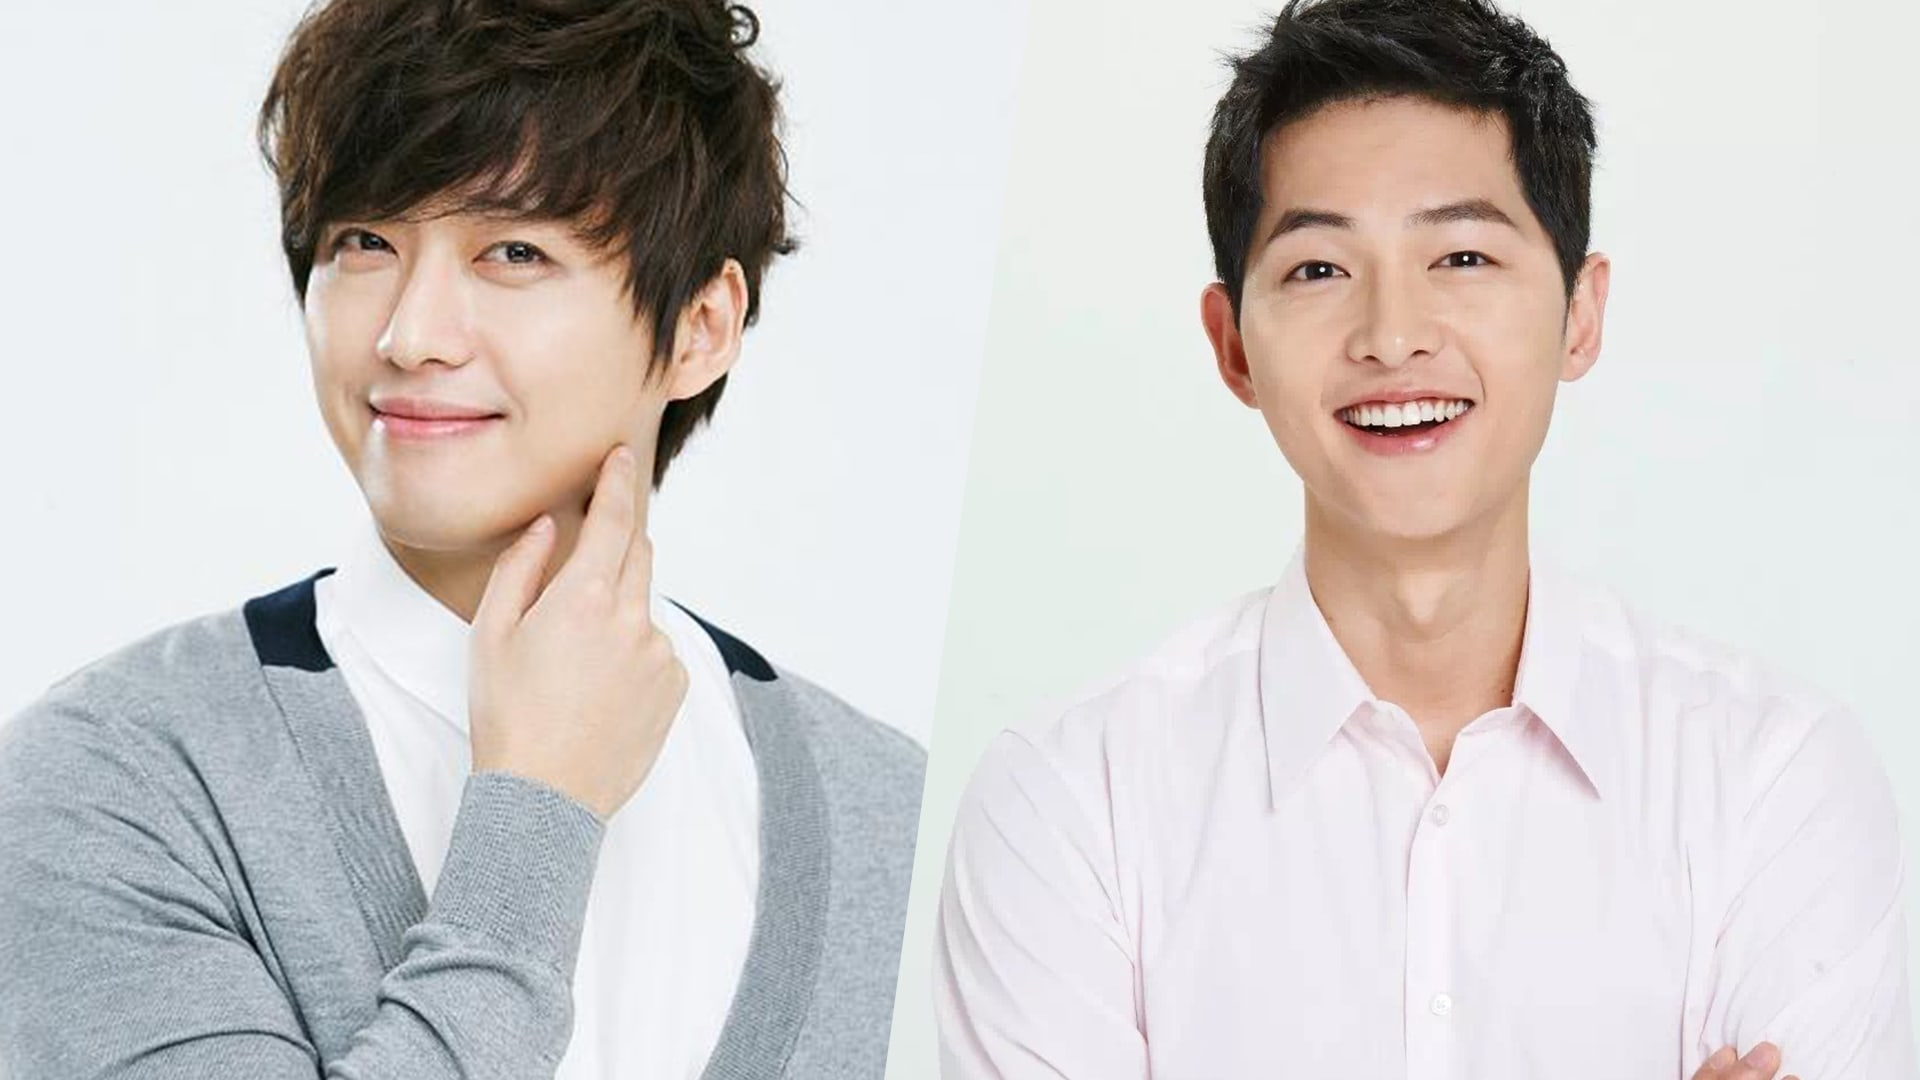 Song Joong Ki And Namgoong Min Confirmed To Be Making Cameo Appearances In Man To Man